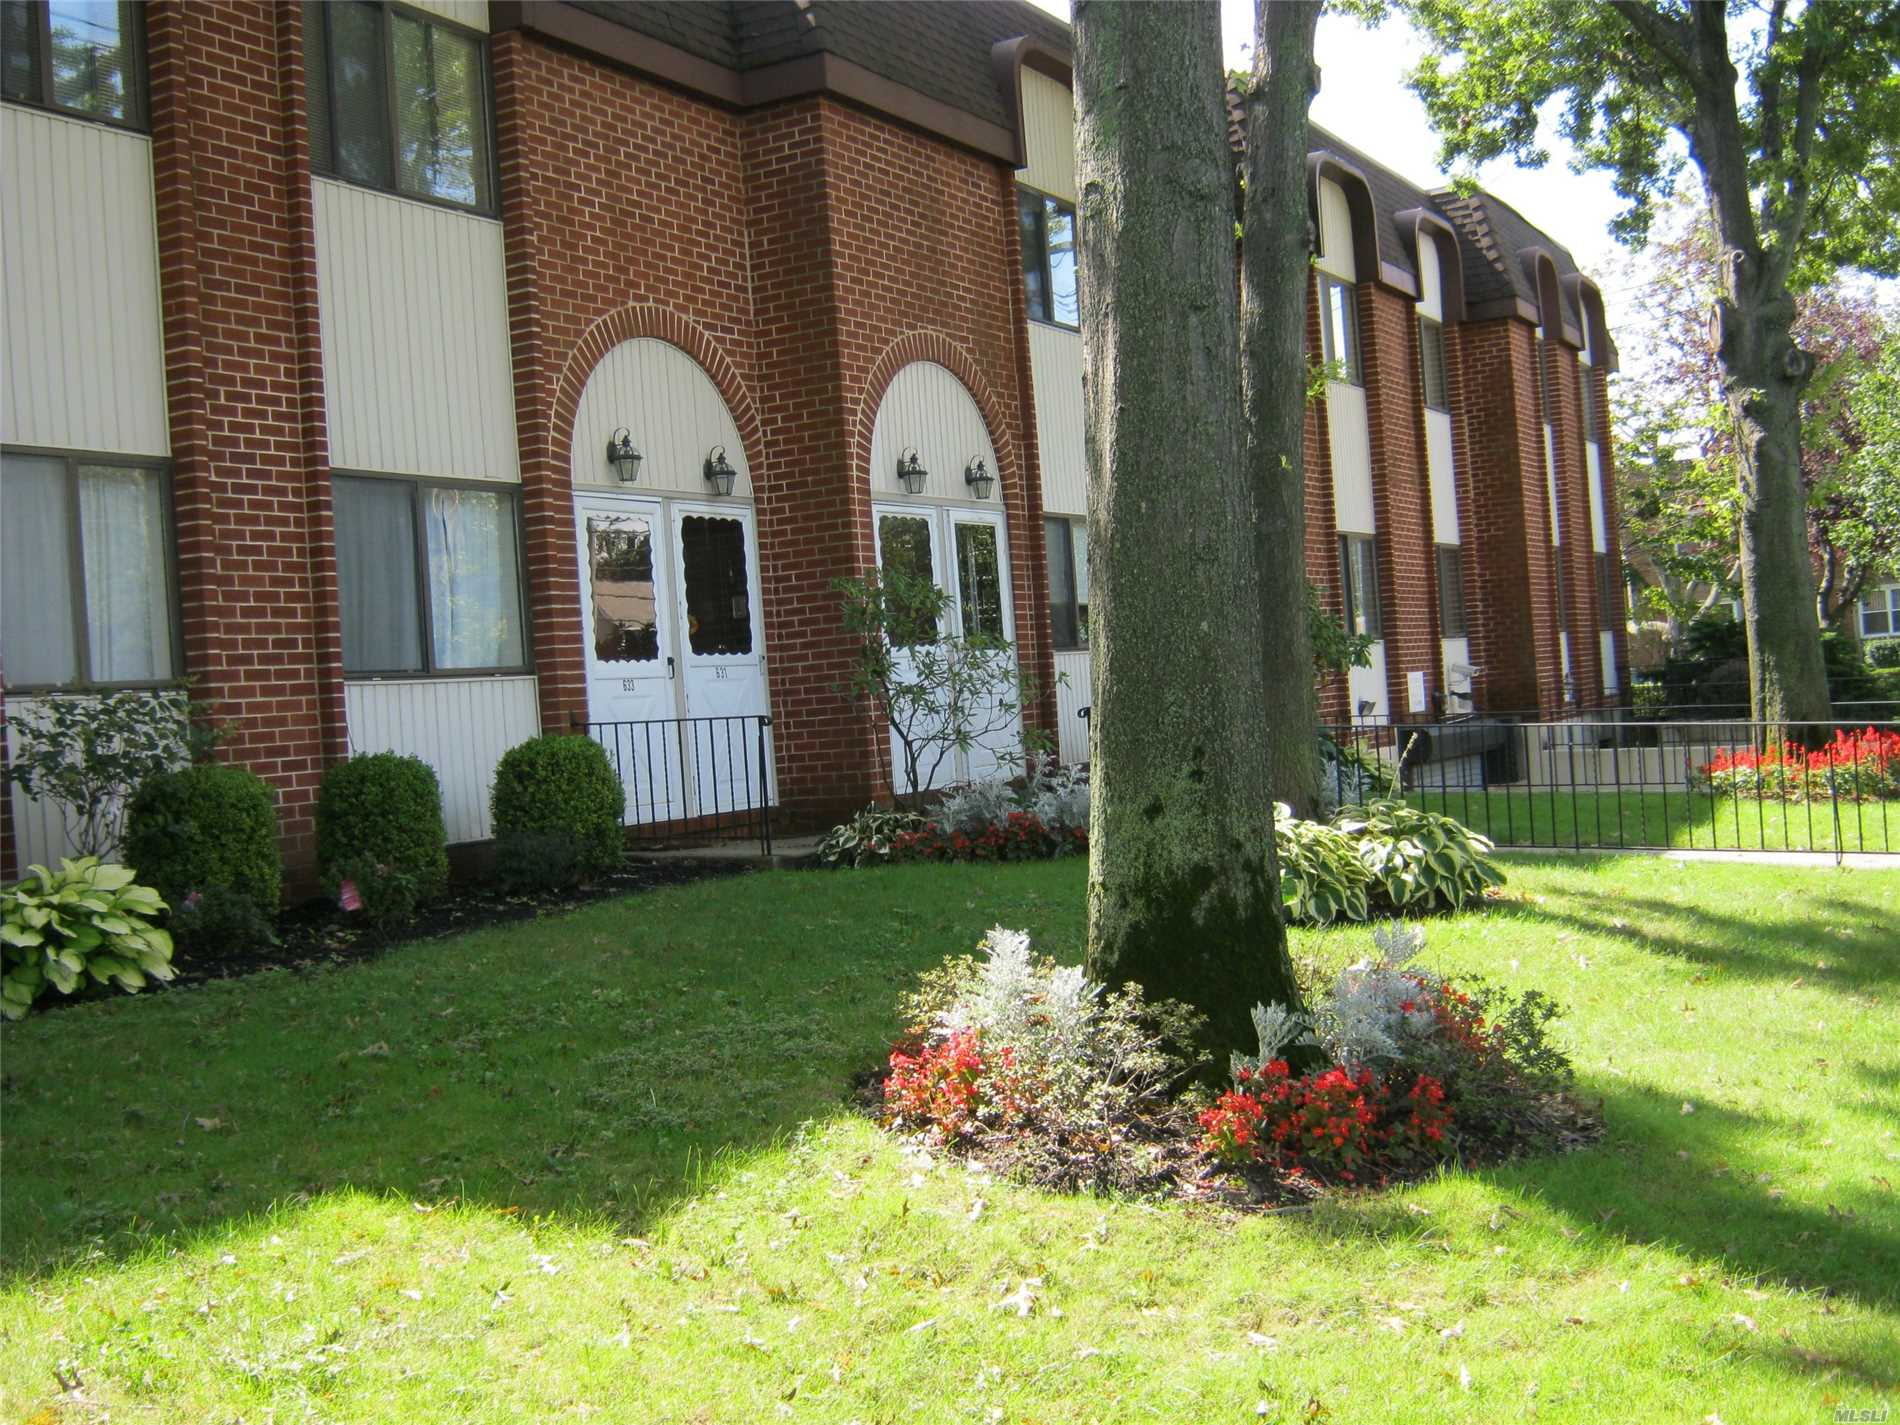 Townhouse 2nd Floor. All New. Hardwood Floors, Washer & Dryer In The Unit, Central Air, Govt Subsides Accepted, Granite Kitchen, 1.5 Bathrooms, Garage Parking Addition Fee 95/Month. Mandatory To Take One Spot, Walk To All